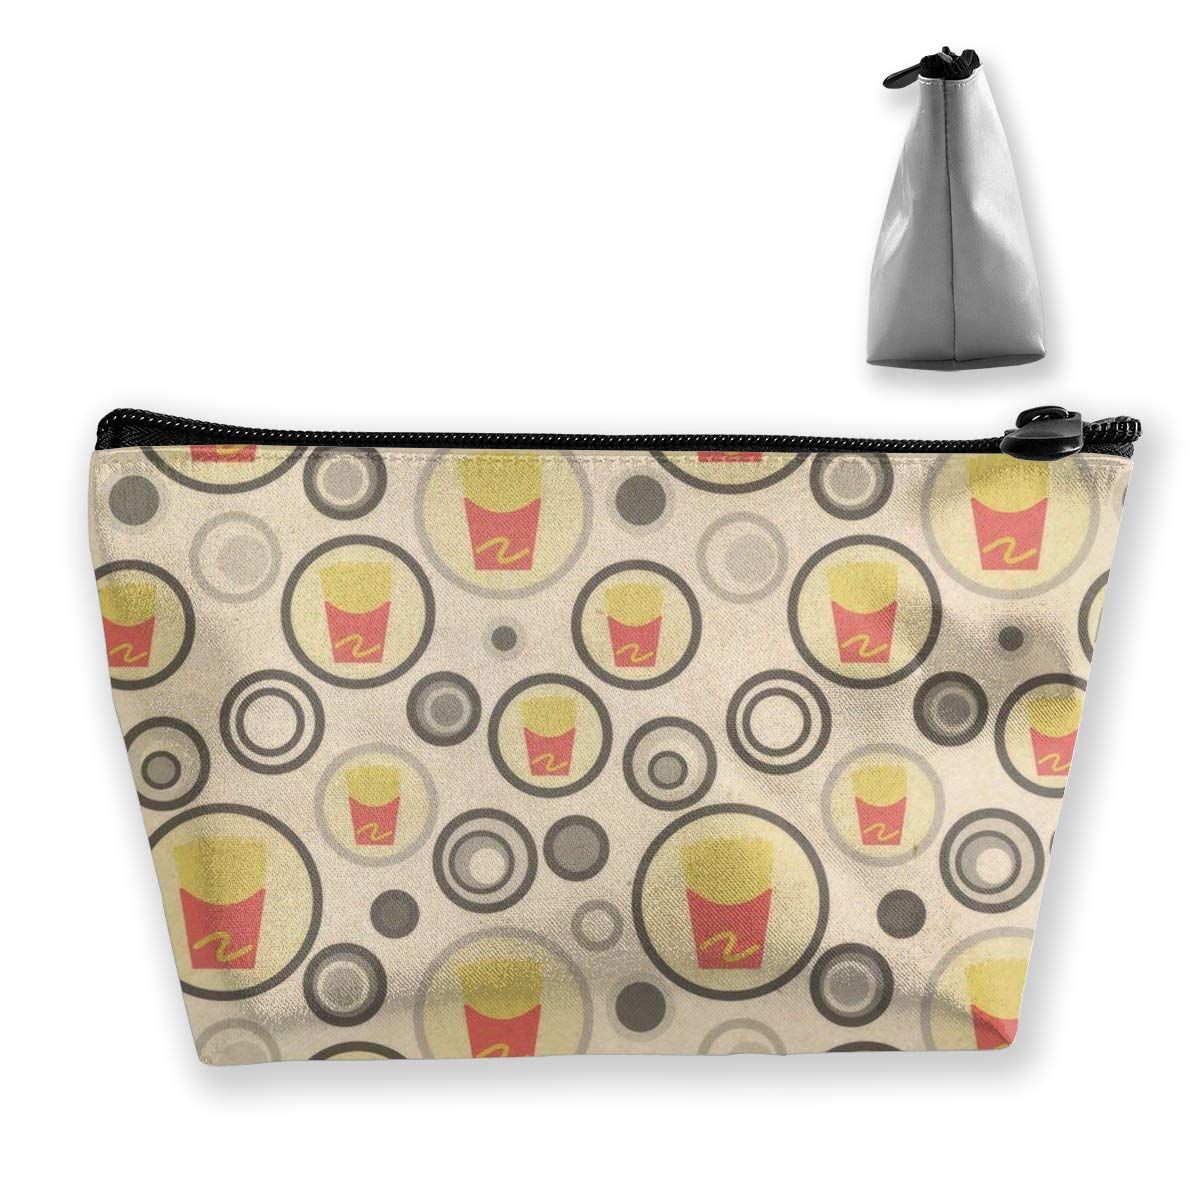 Trapezoid Toiletry Pouch Portable Travel Bag Fries Zipper Wallet